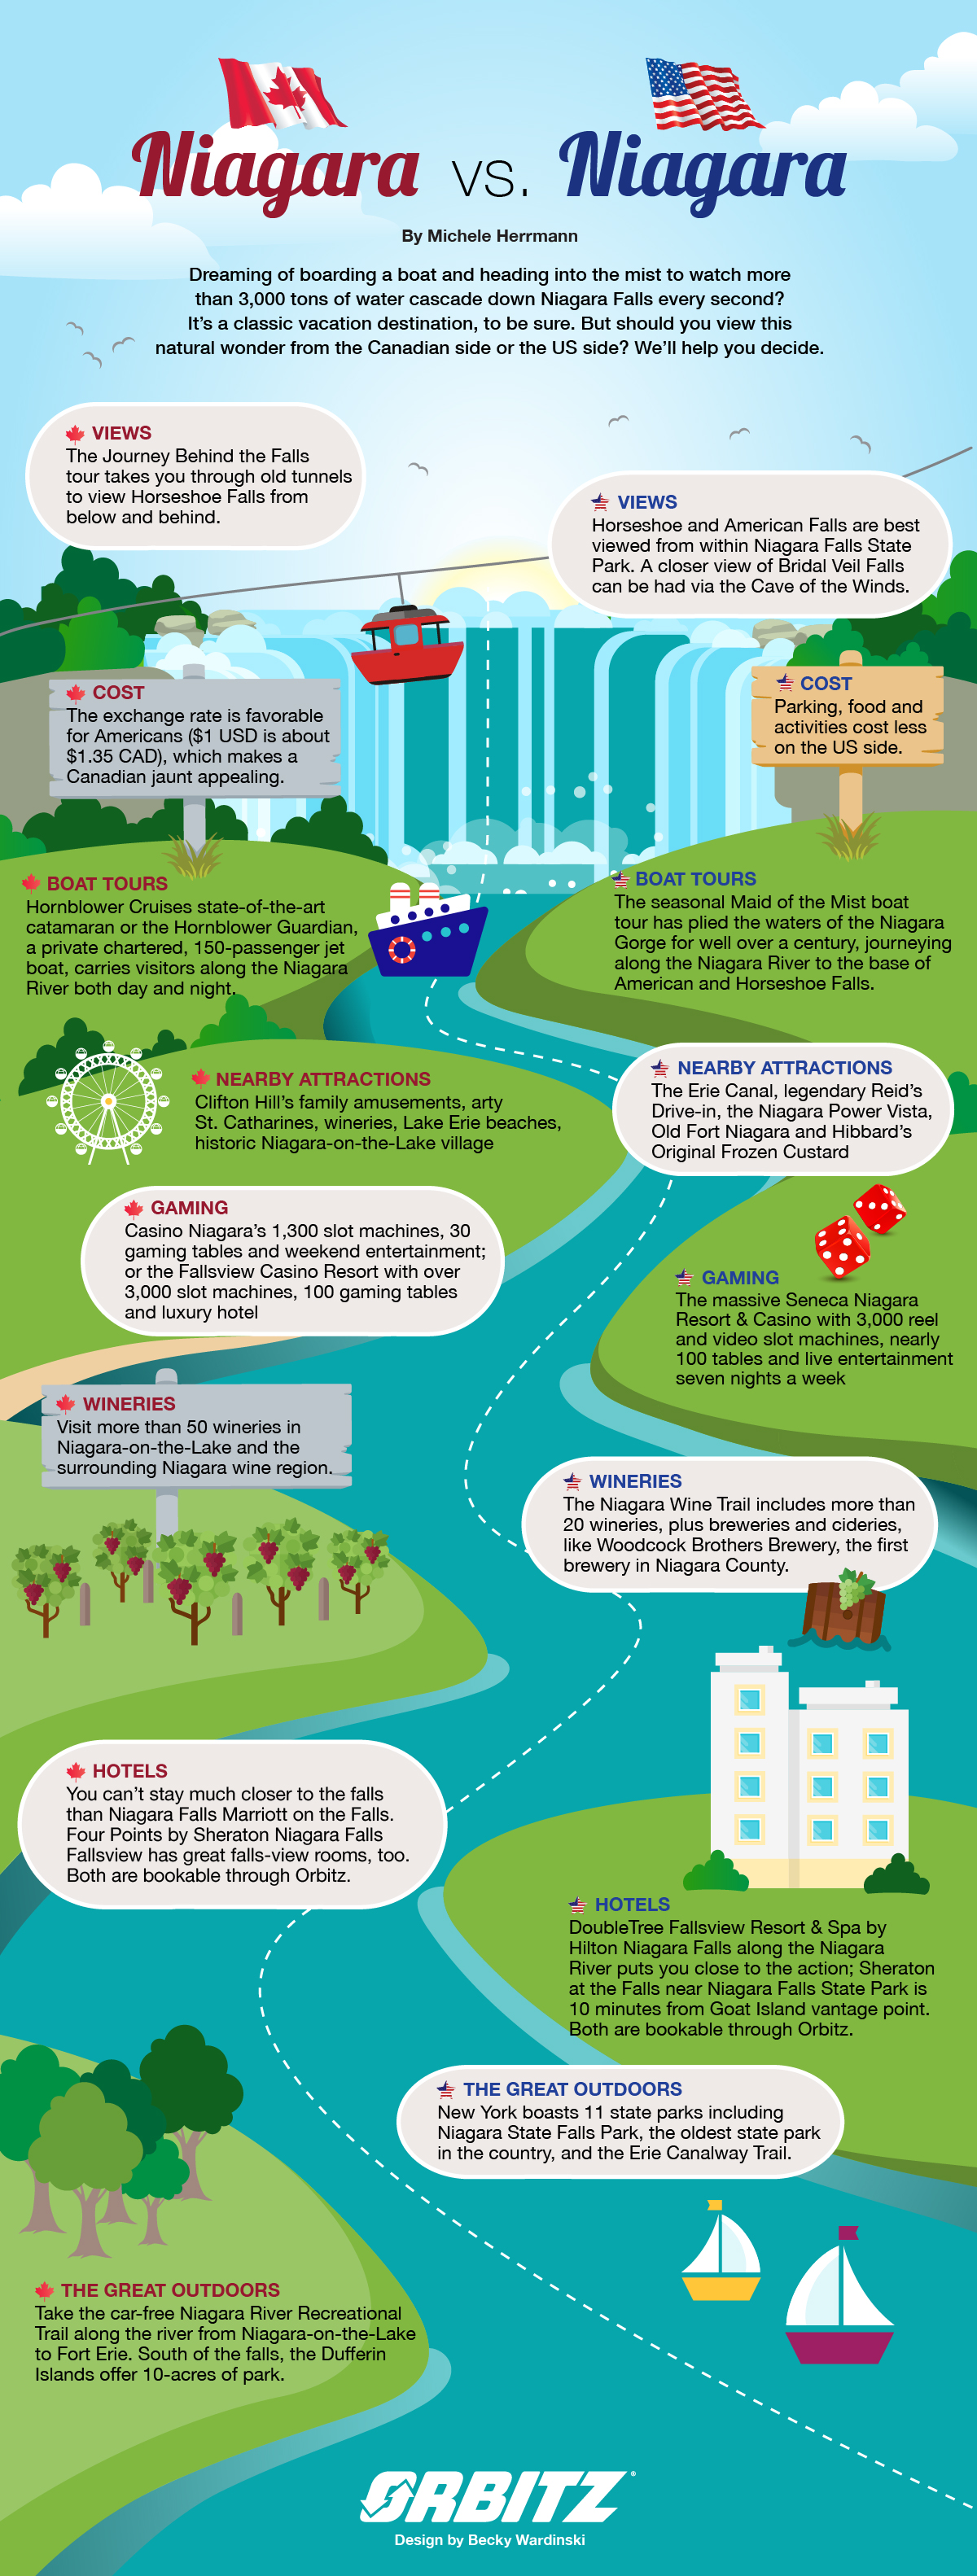 Picking Sides Niagara Canada Vs Niagara Usa Infographic